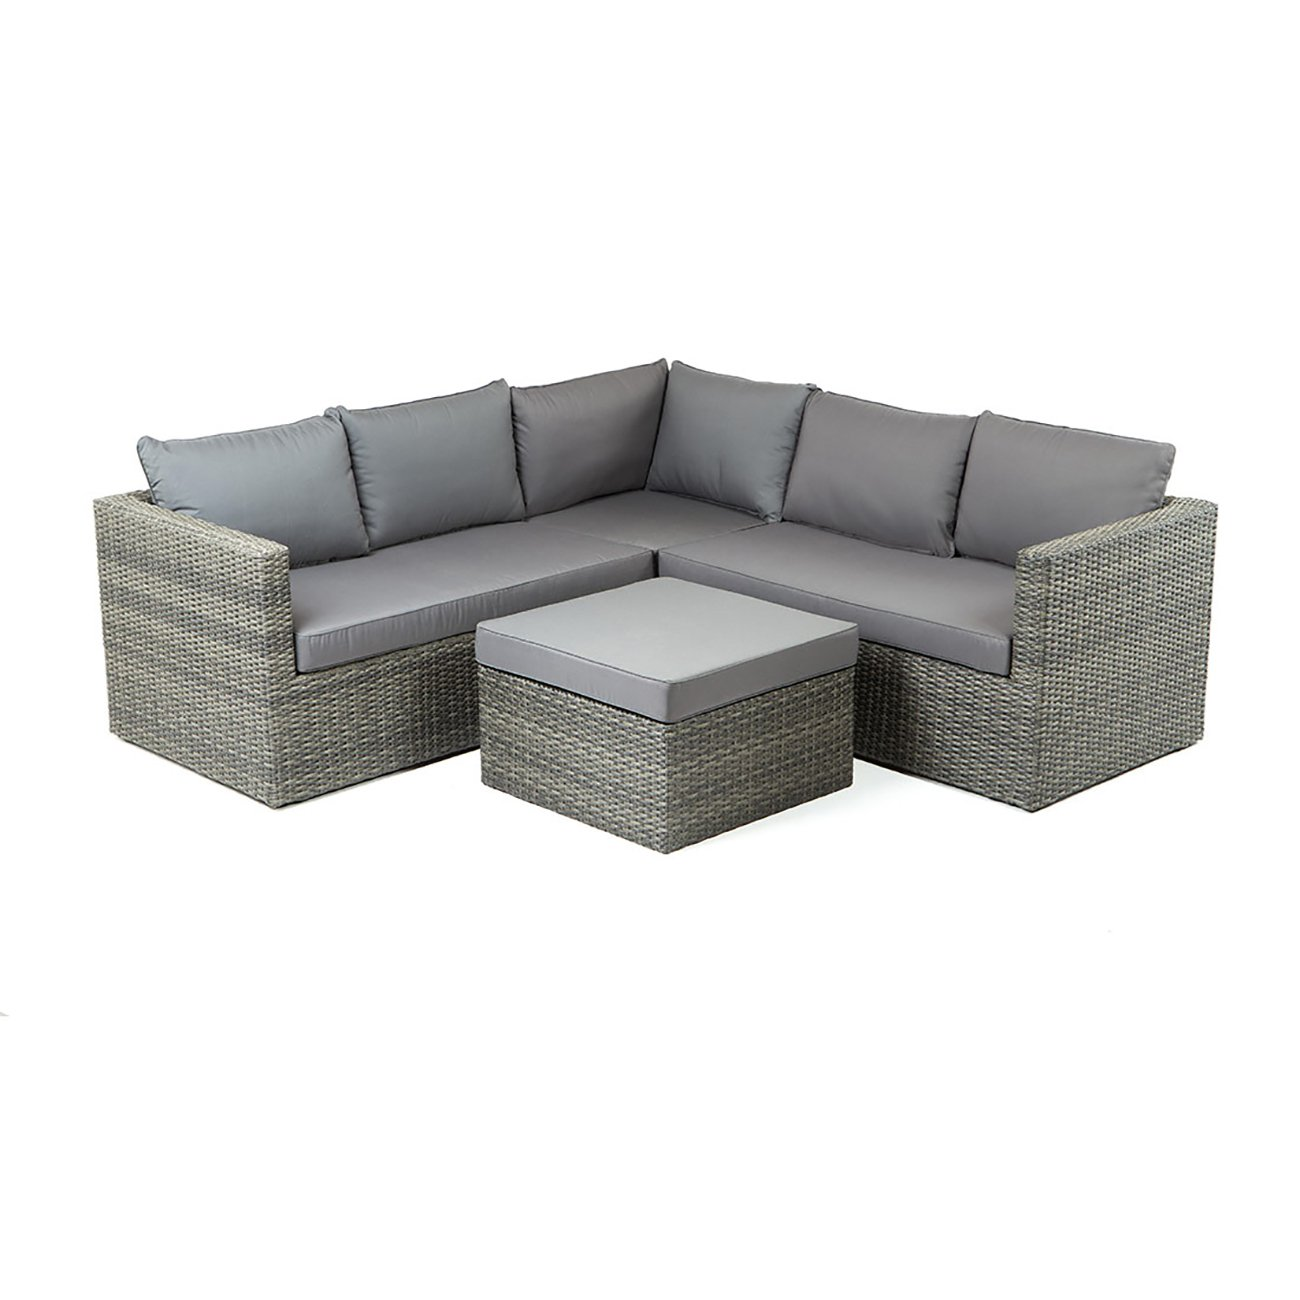 Gartenlounge Polyrattan OUTLIV. Gibson Loungemöbel Garten Outdoor Geflecht Mixed Brown / Royal Blenden Black Lounge-Set